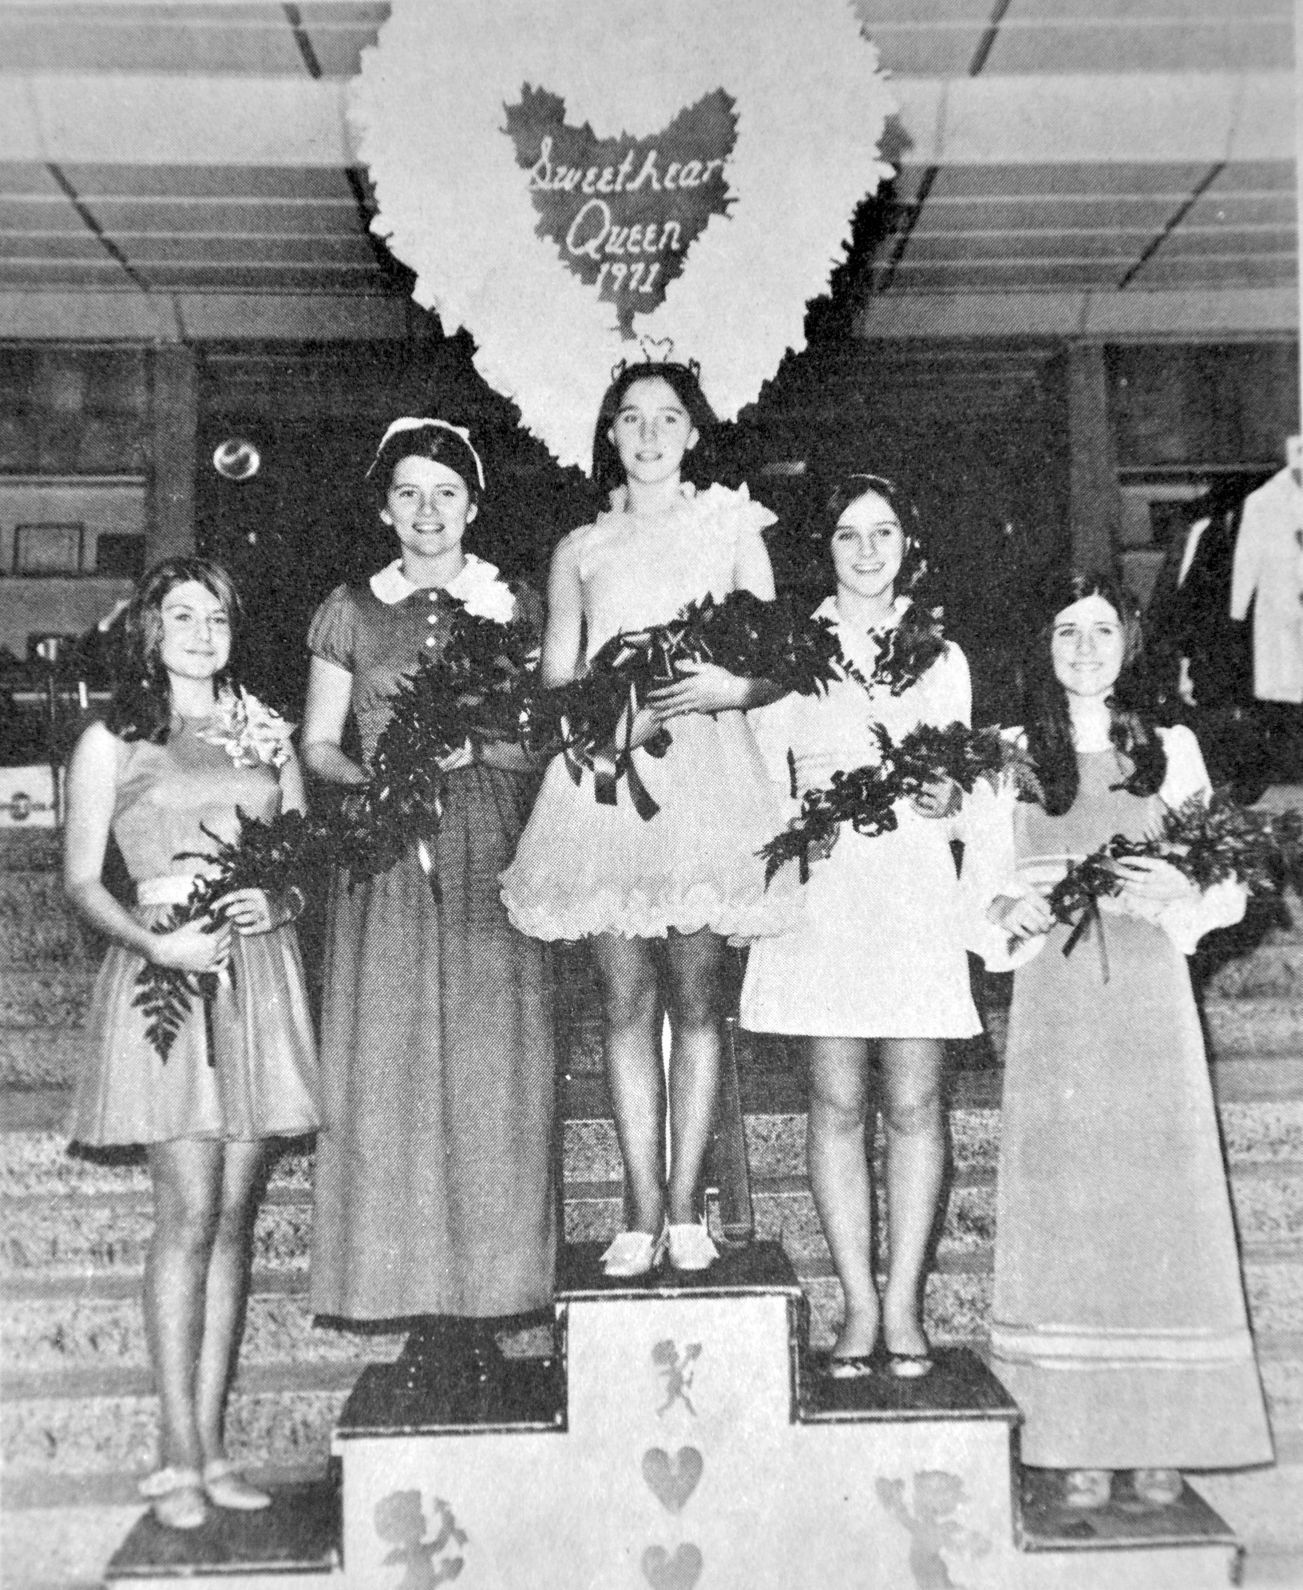 1971 WHS Sweetheart Court